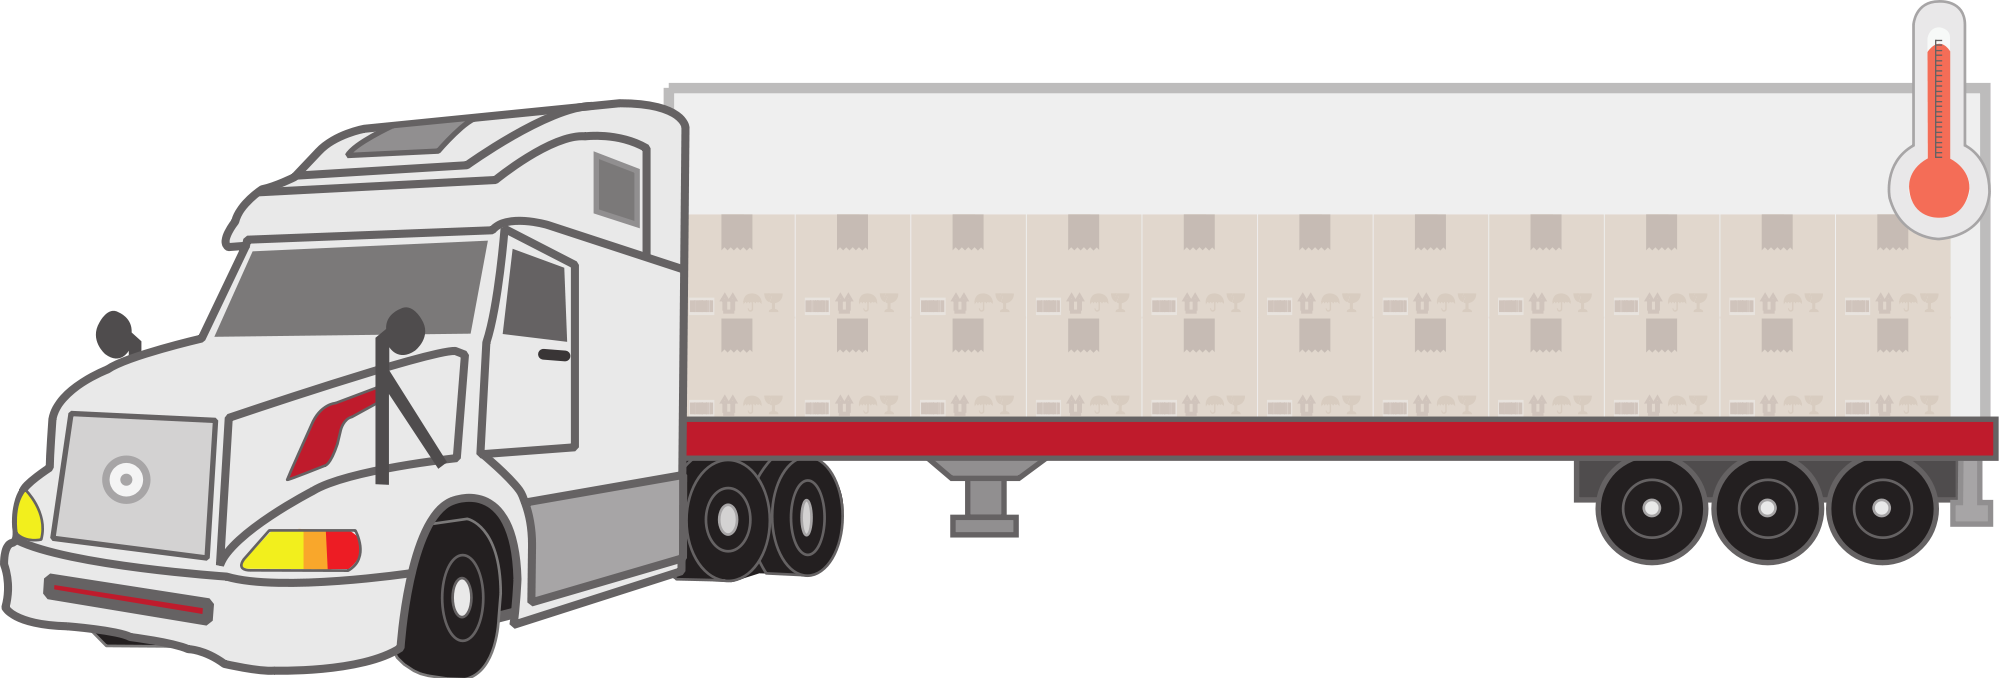 File:Temperature controlled truck clip art.svg.